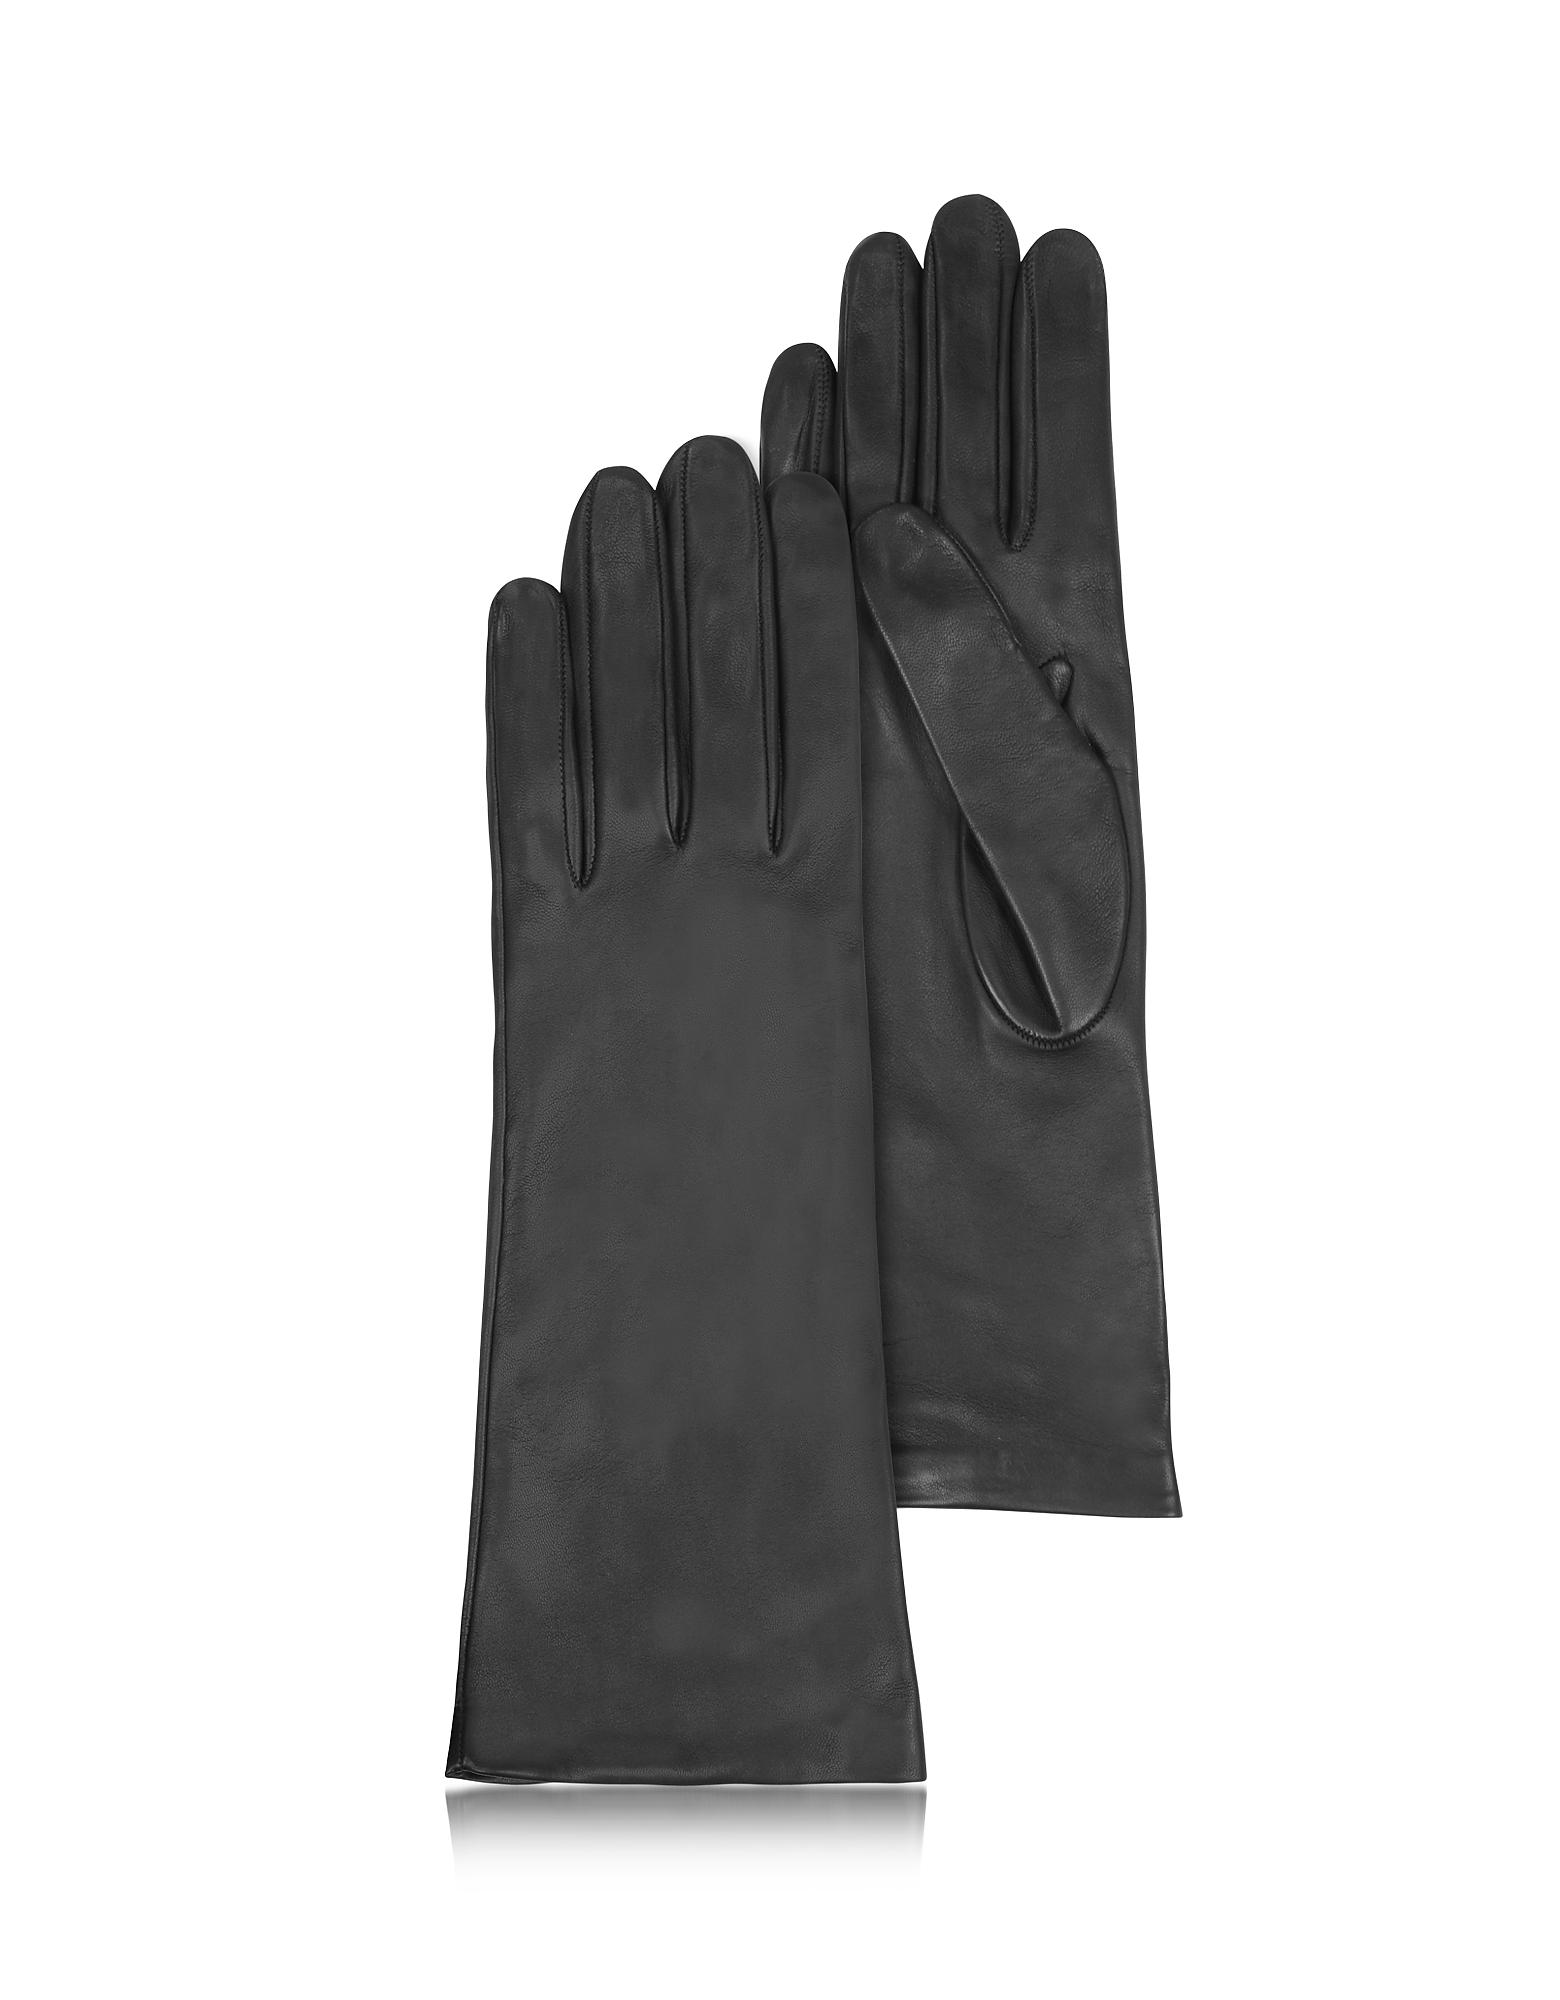 Vintage Style Gloves- Long, Wrist, Evening, Day, Leather, Lace Forzieri Designer Womens Gloves Womens Silk Lined Black Italian Leather Long Gloves $152.00 AT vintagedancer.com